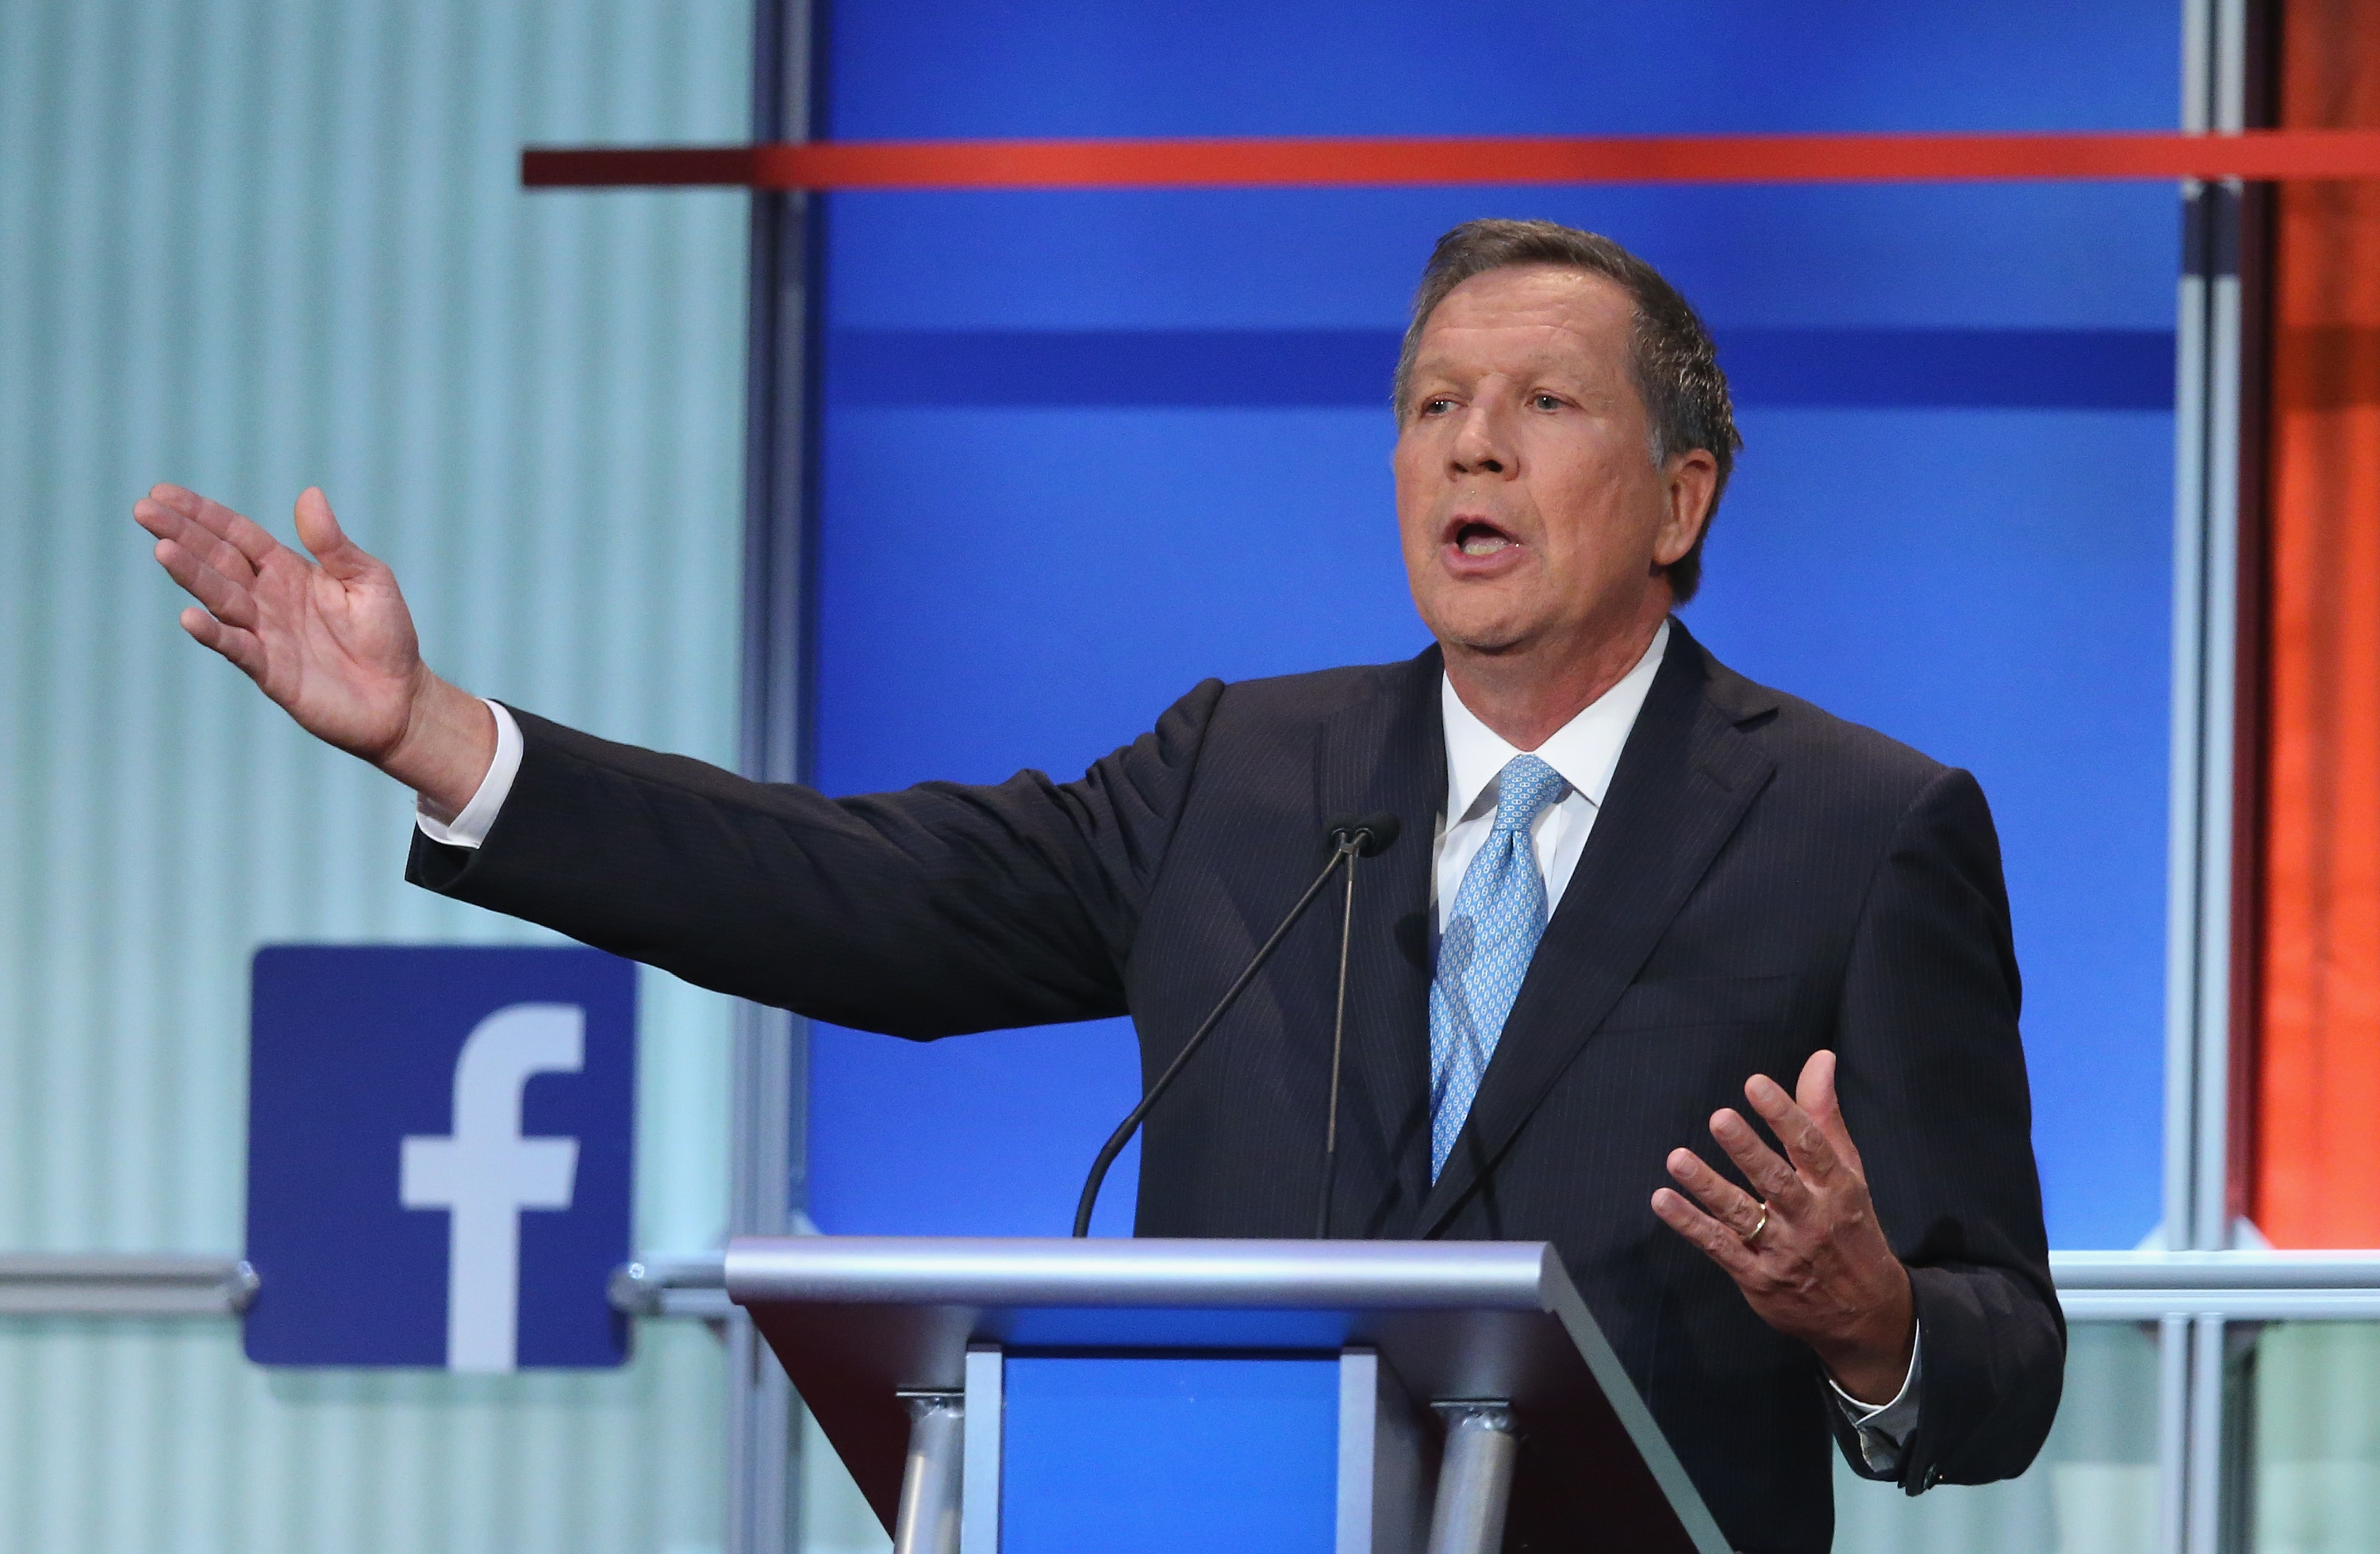 Republican presidential candidate Ohio Gov. John Kasich fields a question during the first Republican presidential debate hosted by Fox News and Facebook at the Quicken Loans Arena in Cleveland, Ohio, on Aug. 6, 2015.